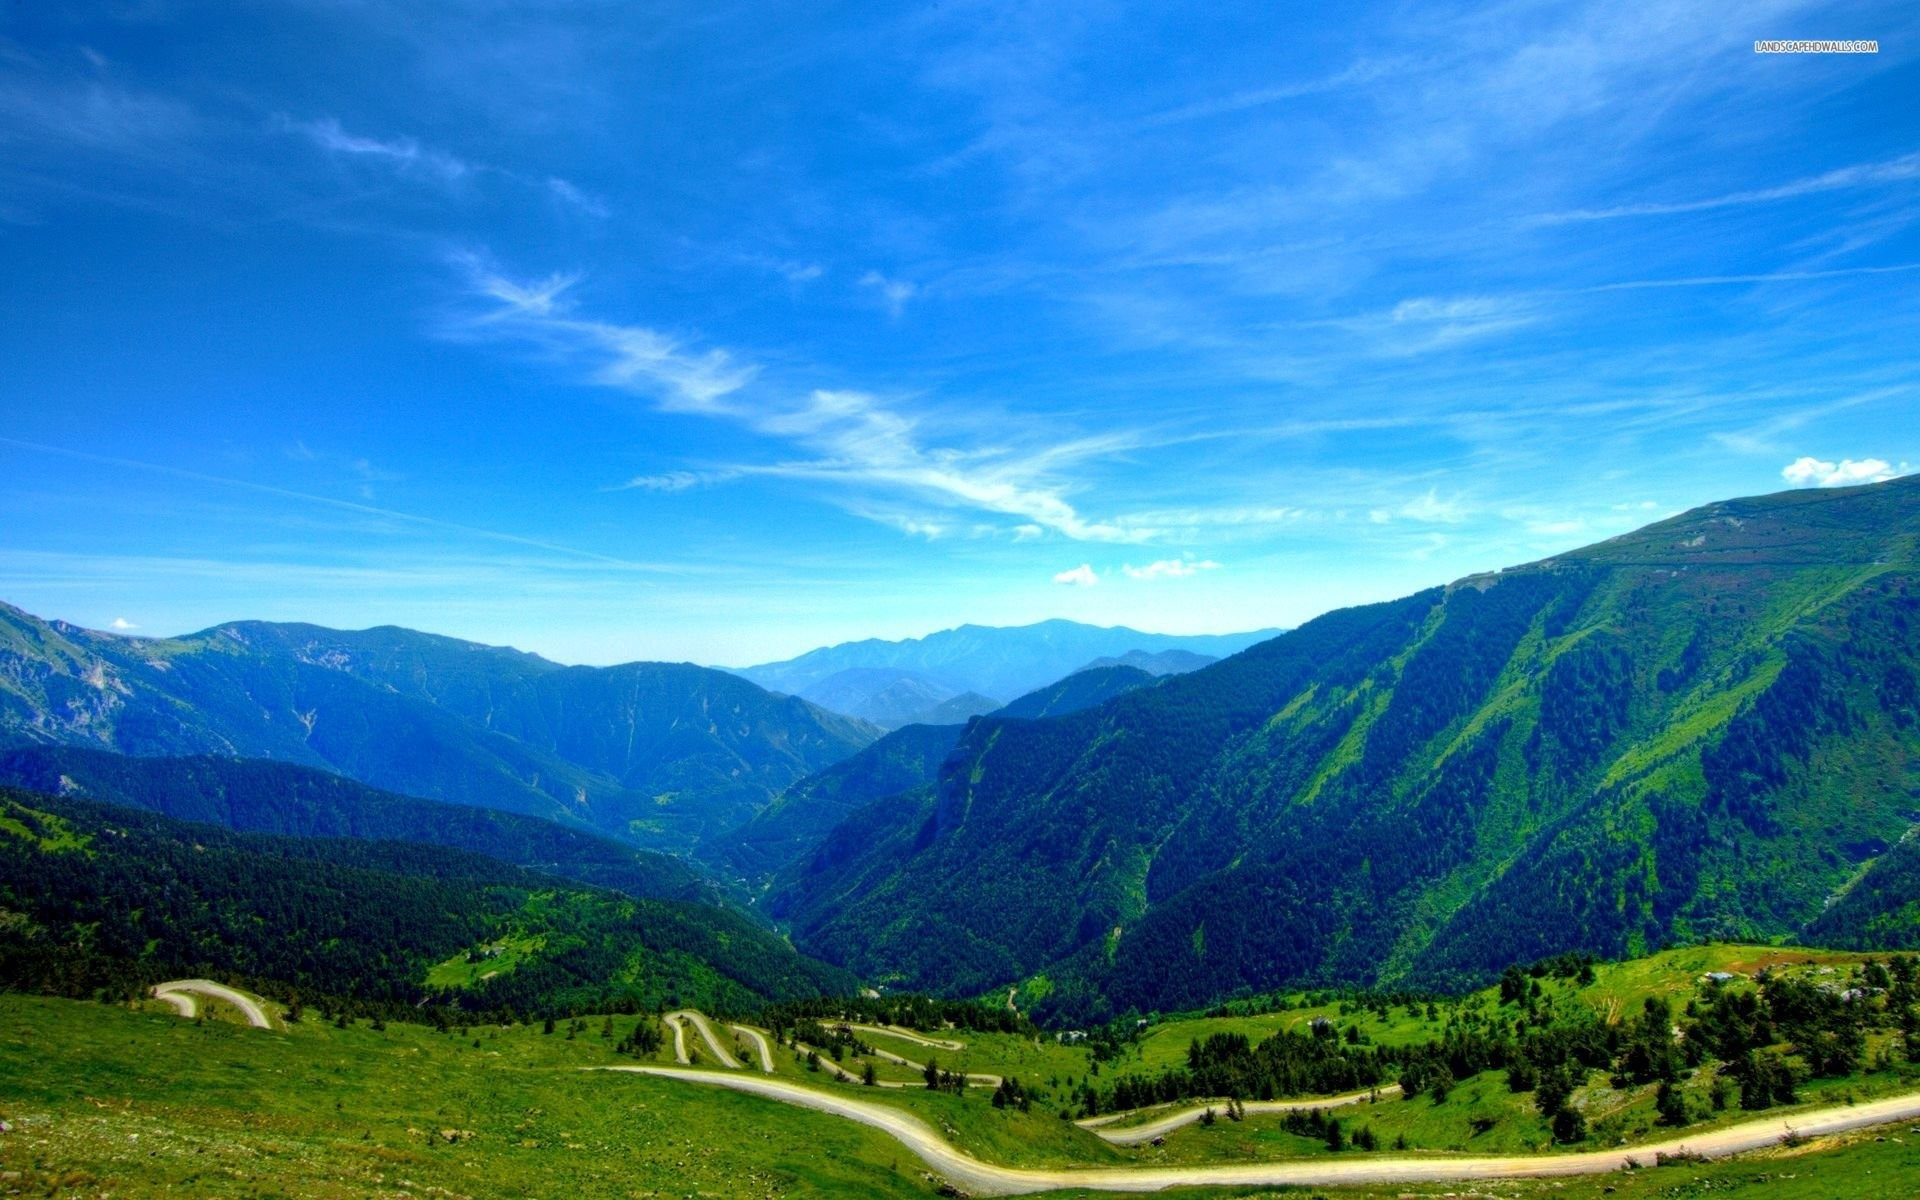 Beautiful Clear Blue Sky Over The Green Mountains